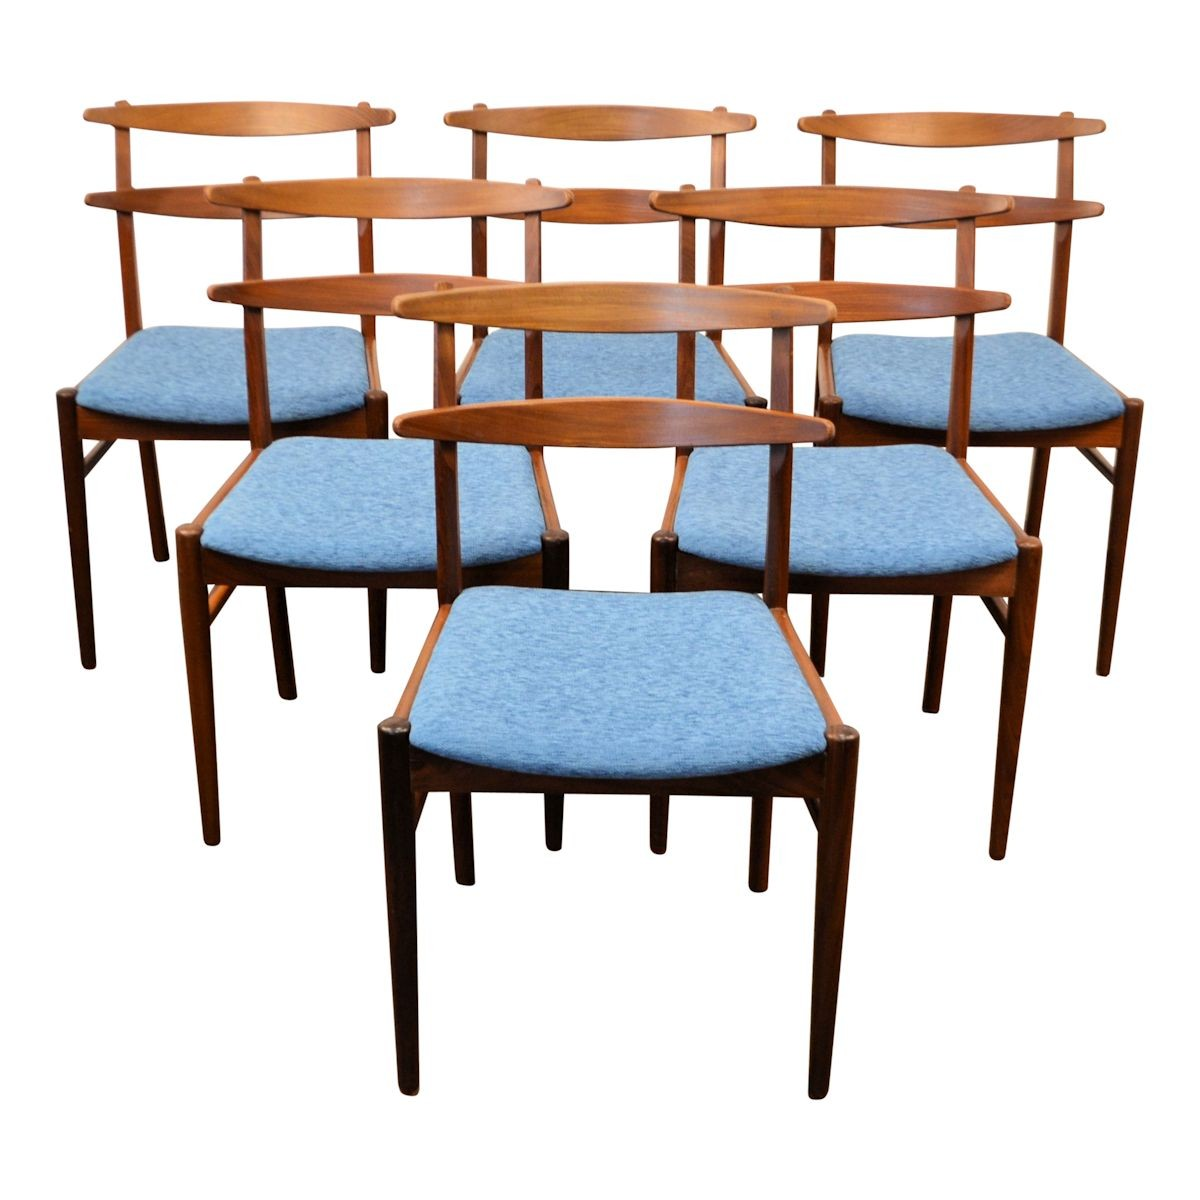 Set Of 6 Dining Chairs: Set Of 6 Danish Vintage Teak Dining Chairs